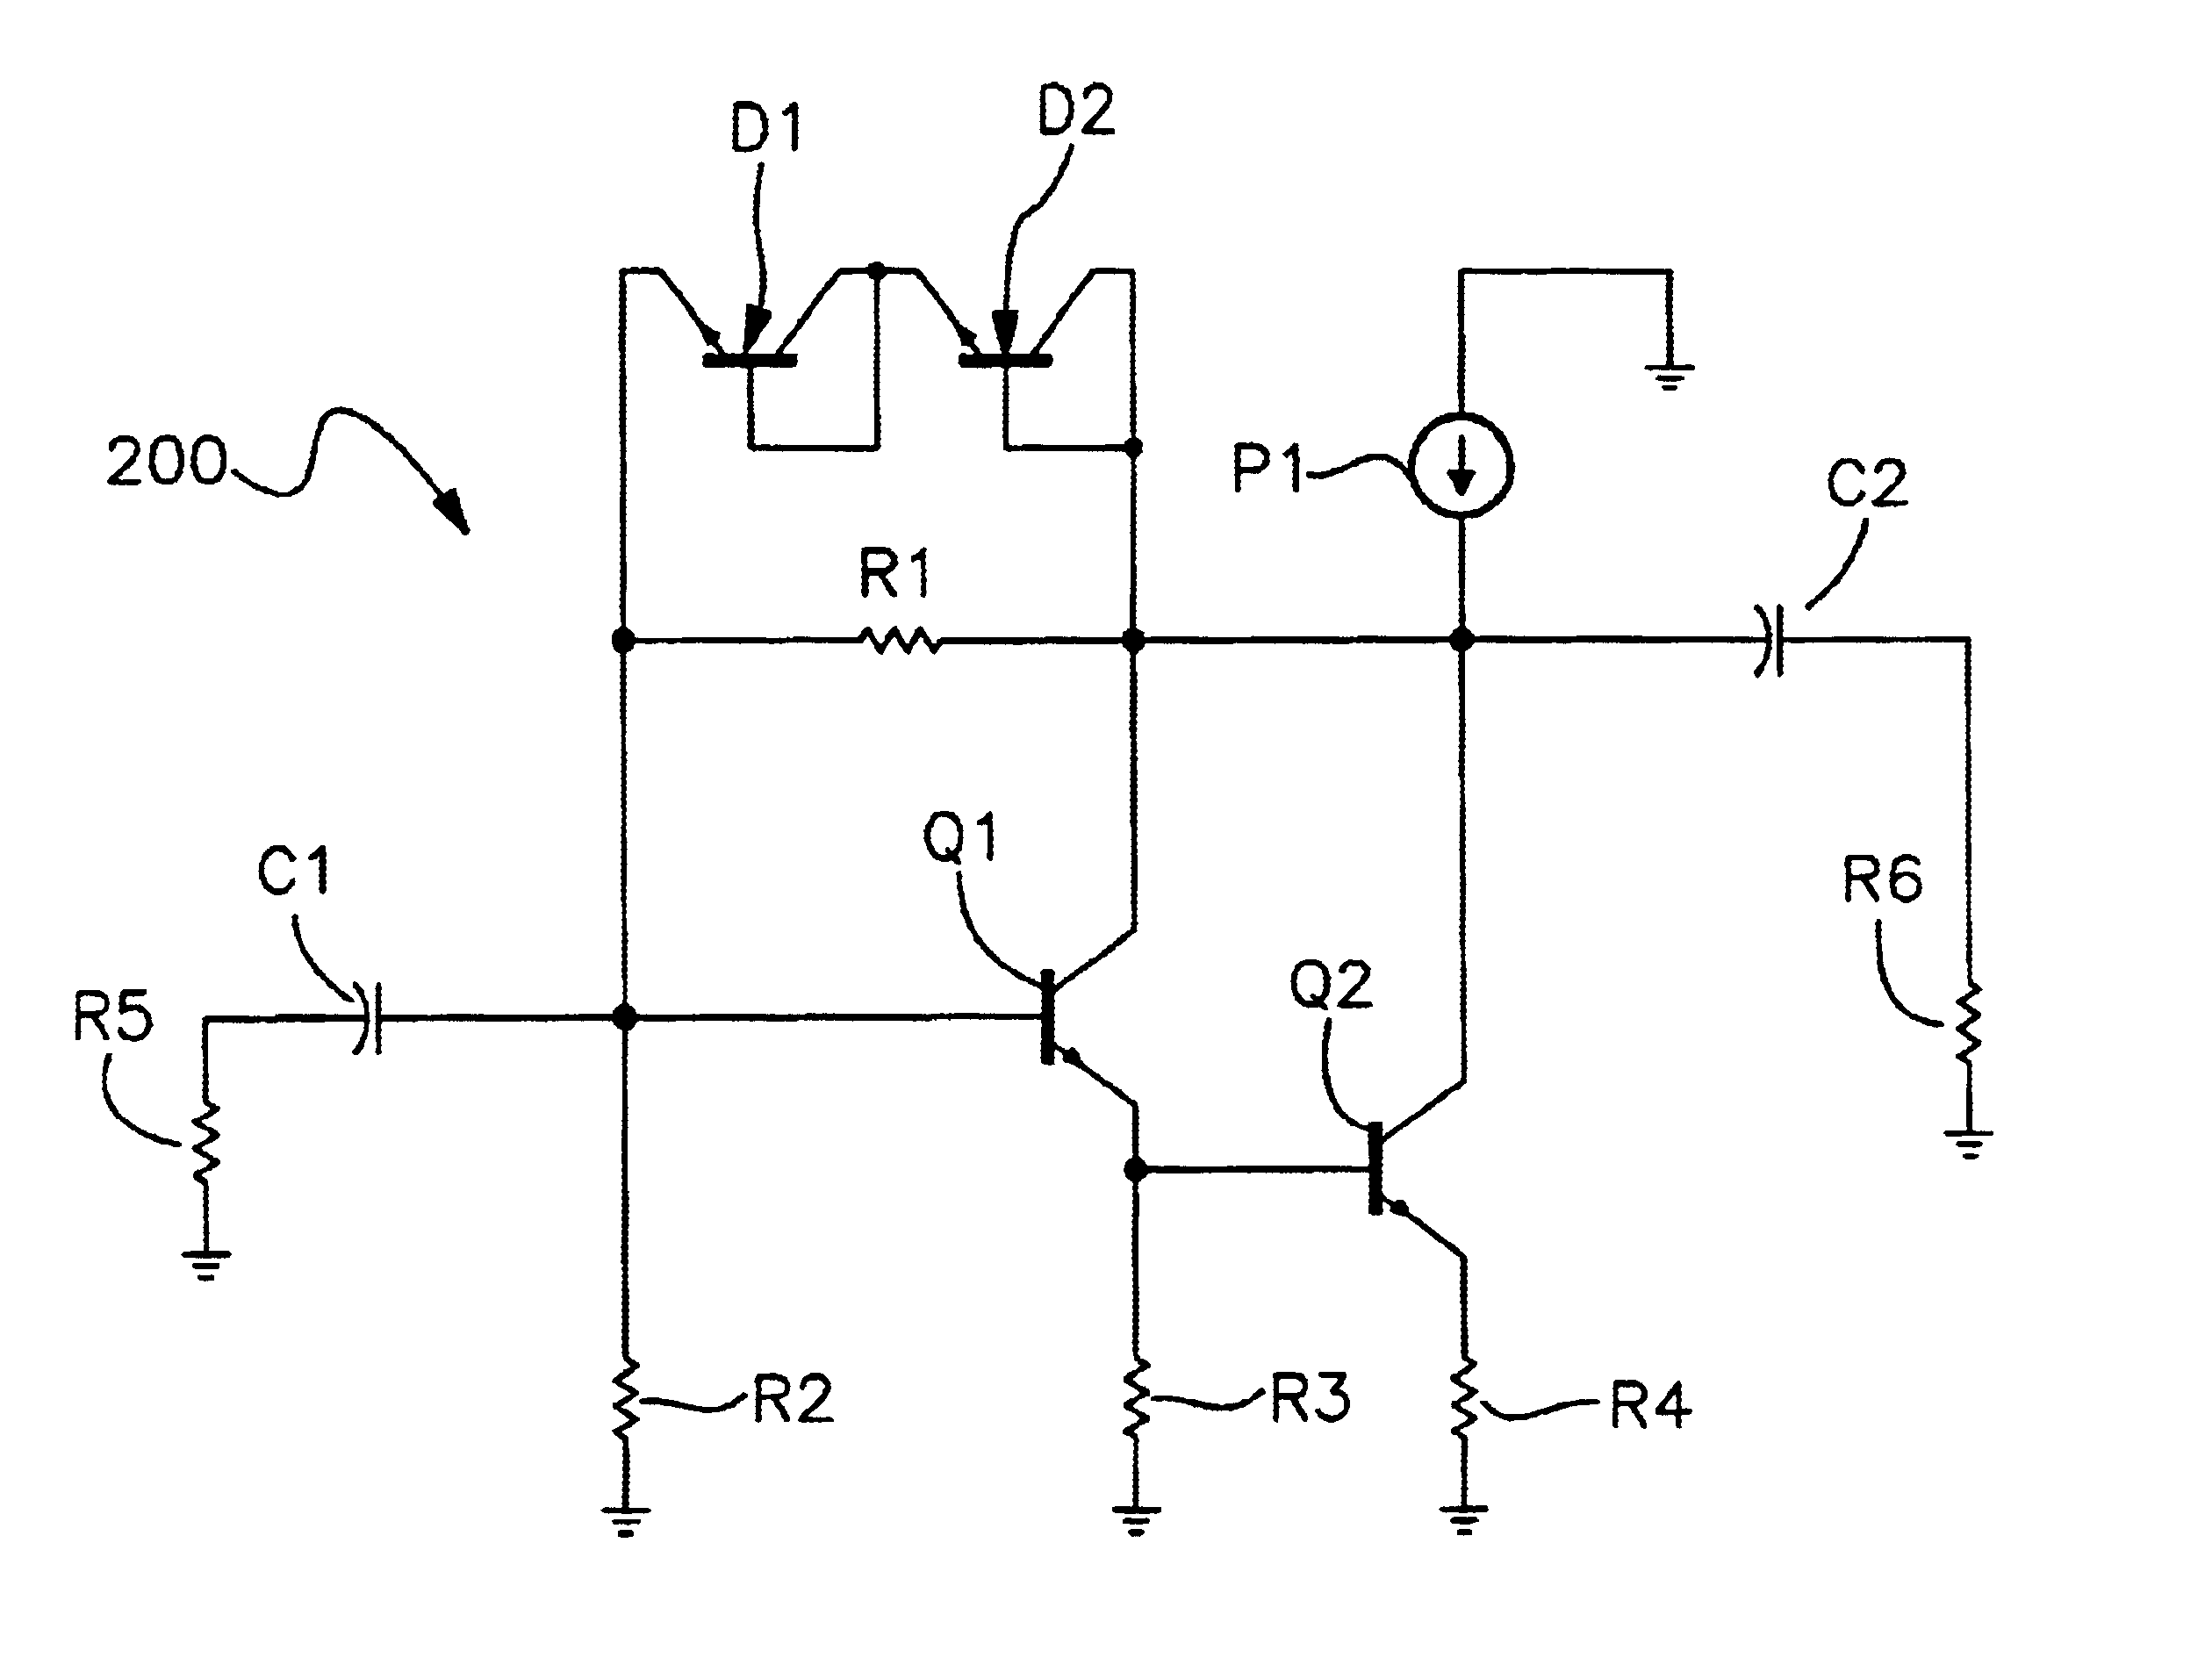 Analytics For Us Patent No 6943629 Transient Protection Circuit Of Npn Transistor Darlington Configuration The Output Capacitor Has A Larger Capacitance Than Input Such That Excessive Voltage Is Prevented From Developing On Transistors